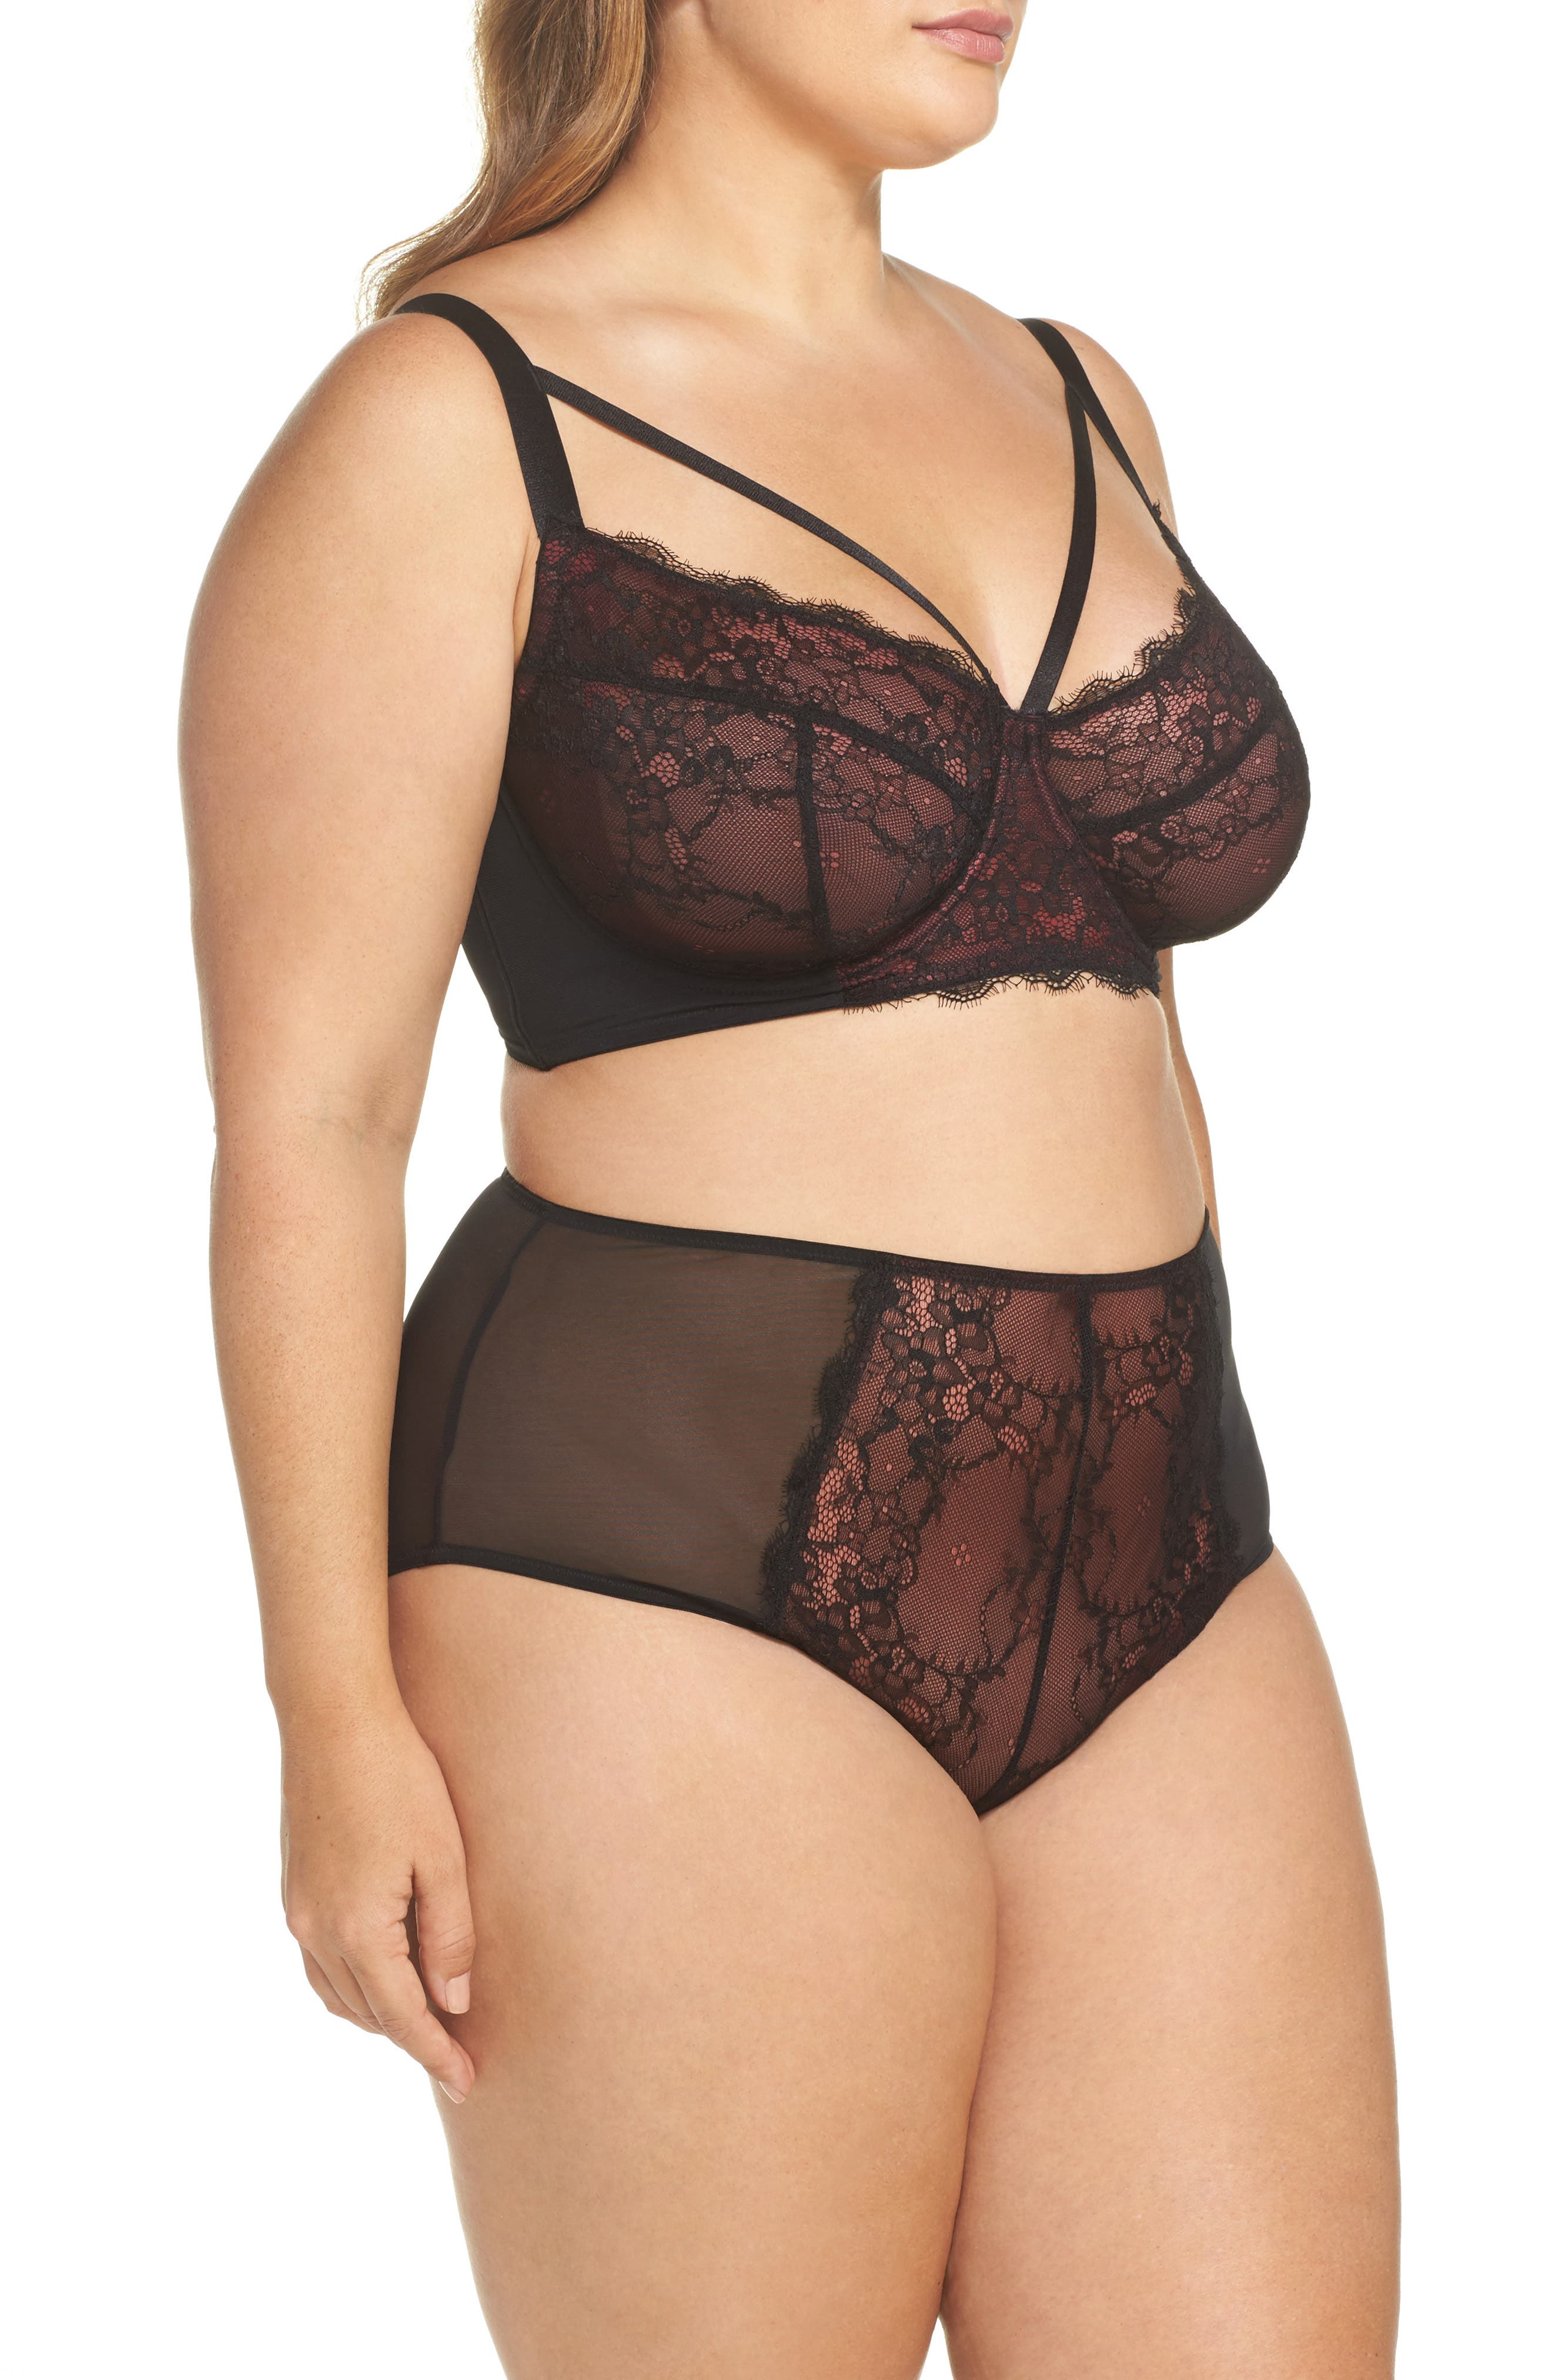 Gabi Fresh x Playful Promises Underwire Lace Harness Bra,                             Alternate thumbnail 8, color,                             Red/ Black